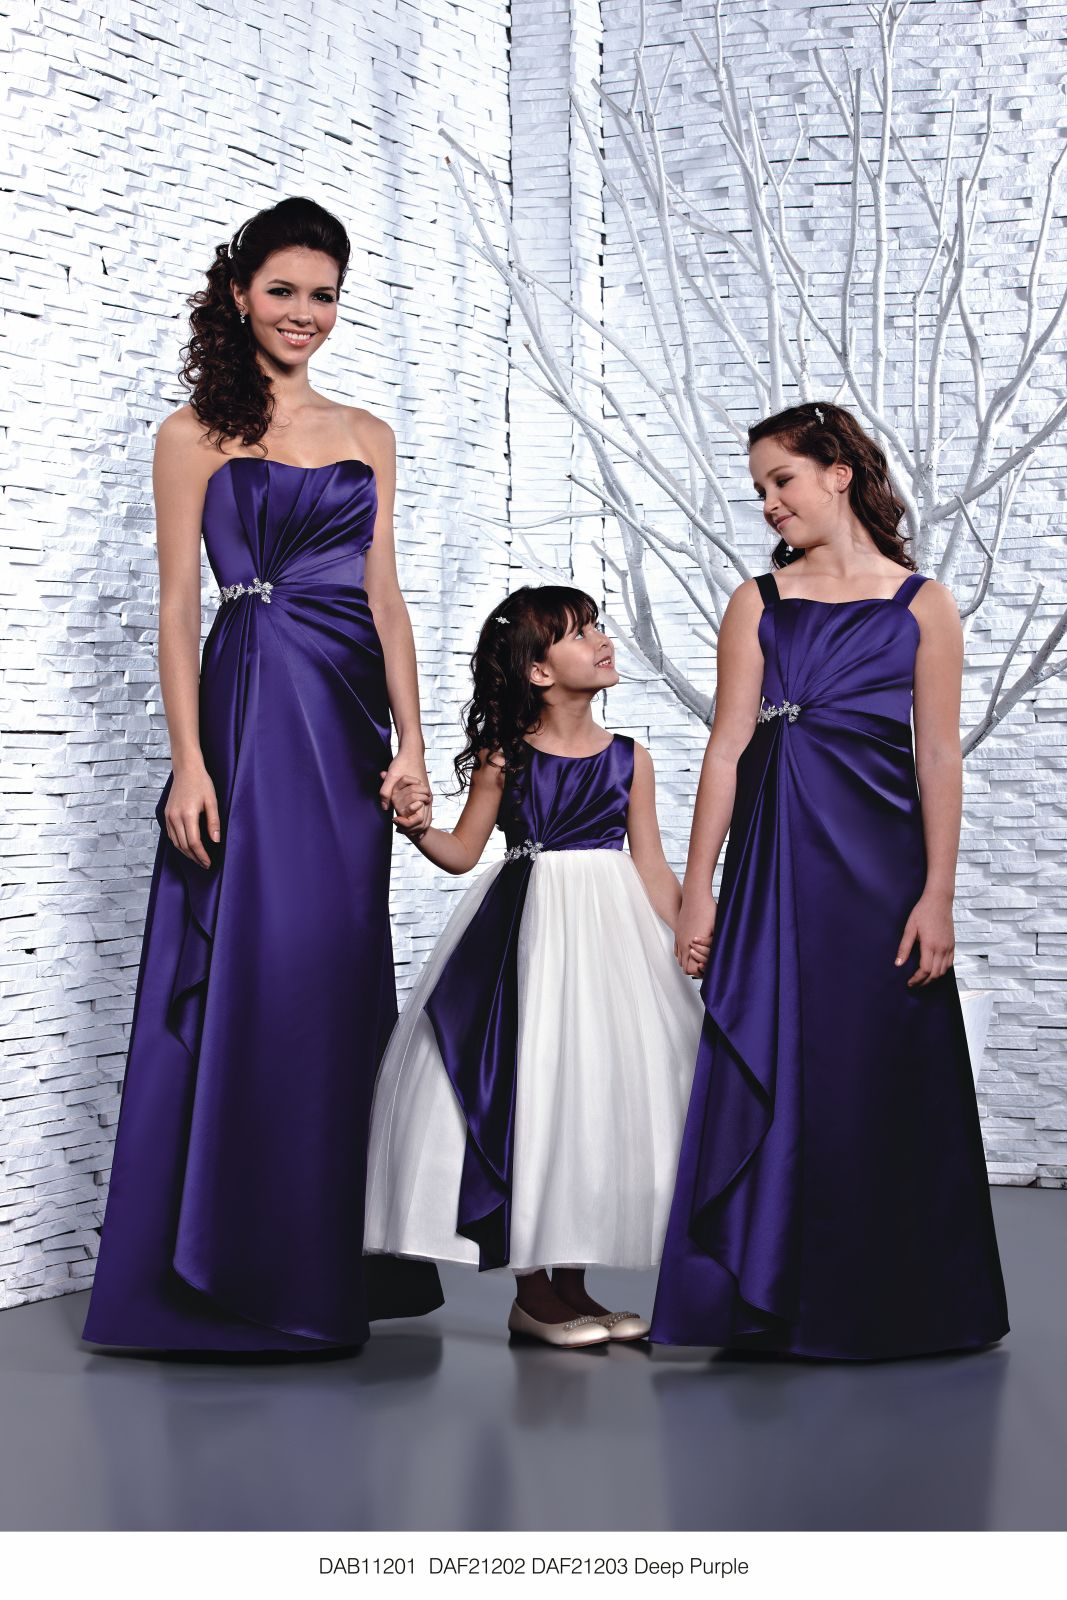 Dresses ideas myriam basantes pinterest dress ideas deep dresses ideas myriam basantes pinterest dress ideas deep purple and purple bridesmaid dresses ombrellifo Image collections